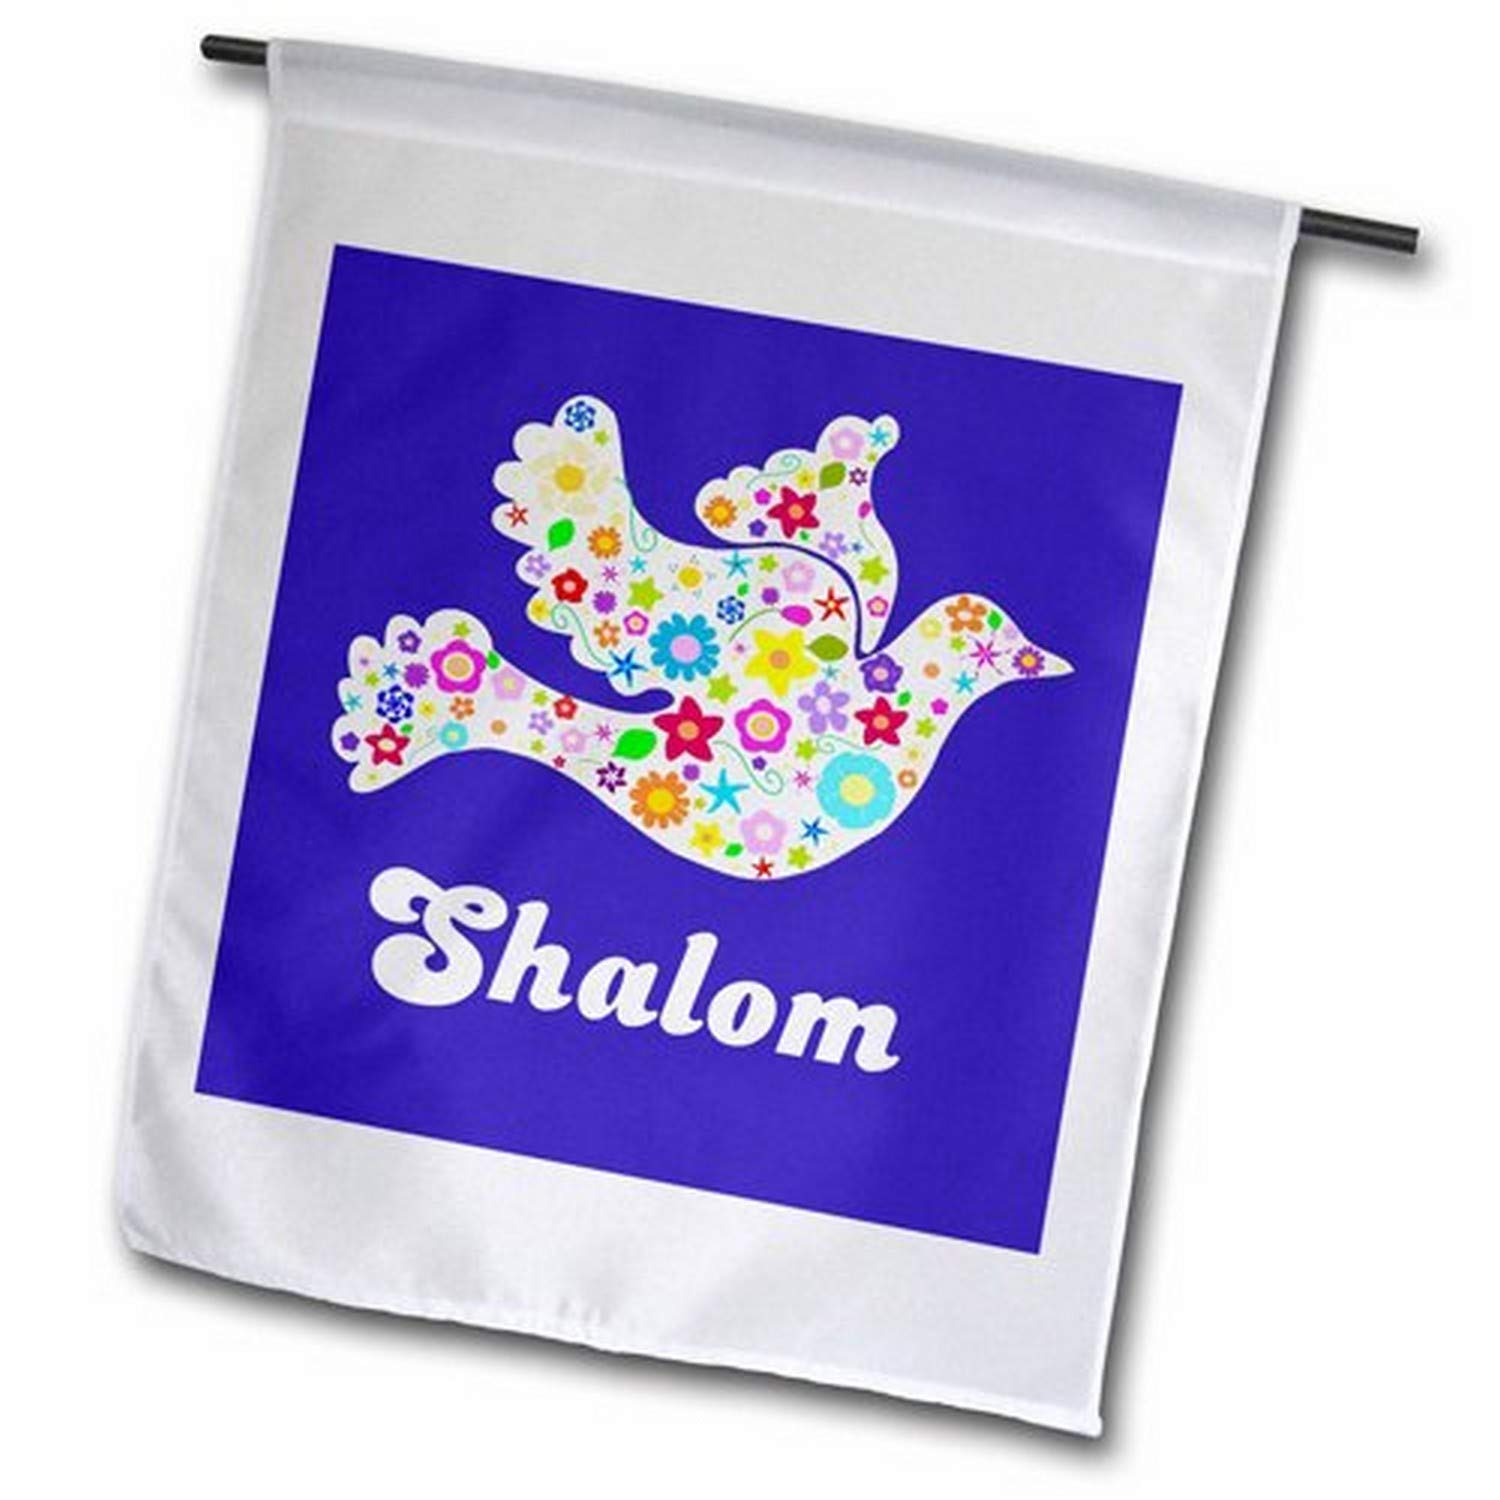 3dRose fl_58350_2 White Floral Dove of Peace with Shalom Text, Jewish, Hebrew, Judaism Garden Flag, 18 by 27""